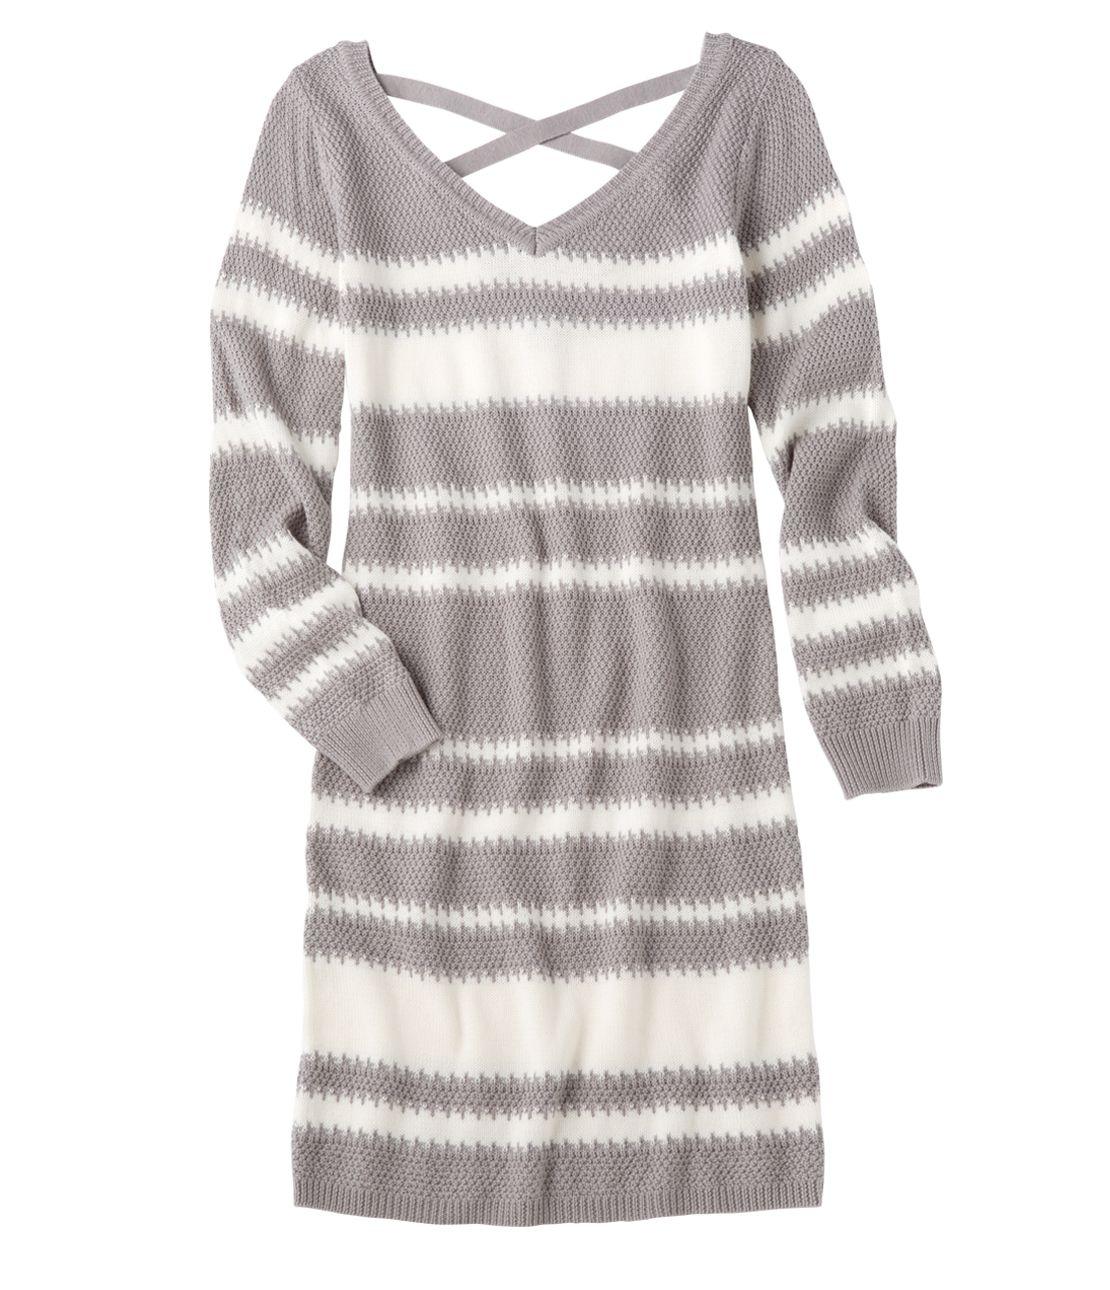 Jagged border back cross knit dress